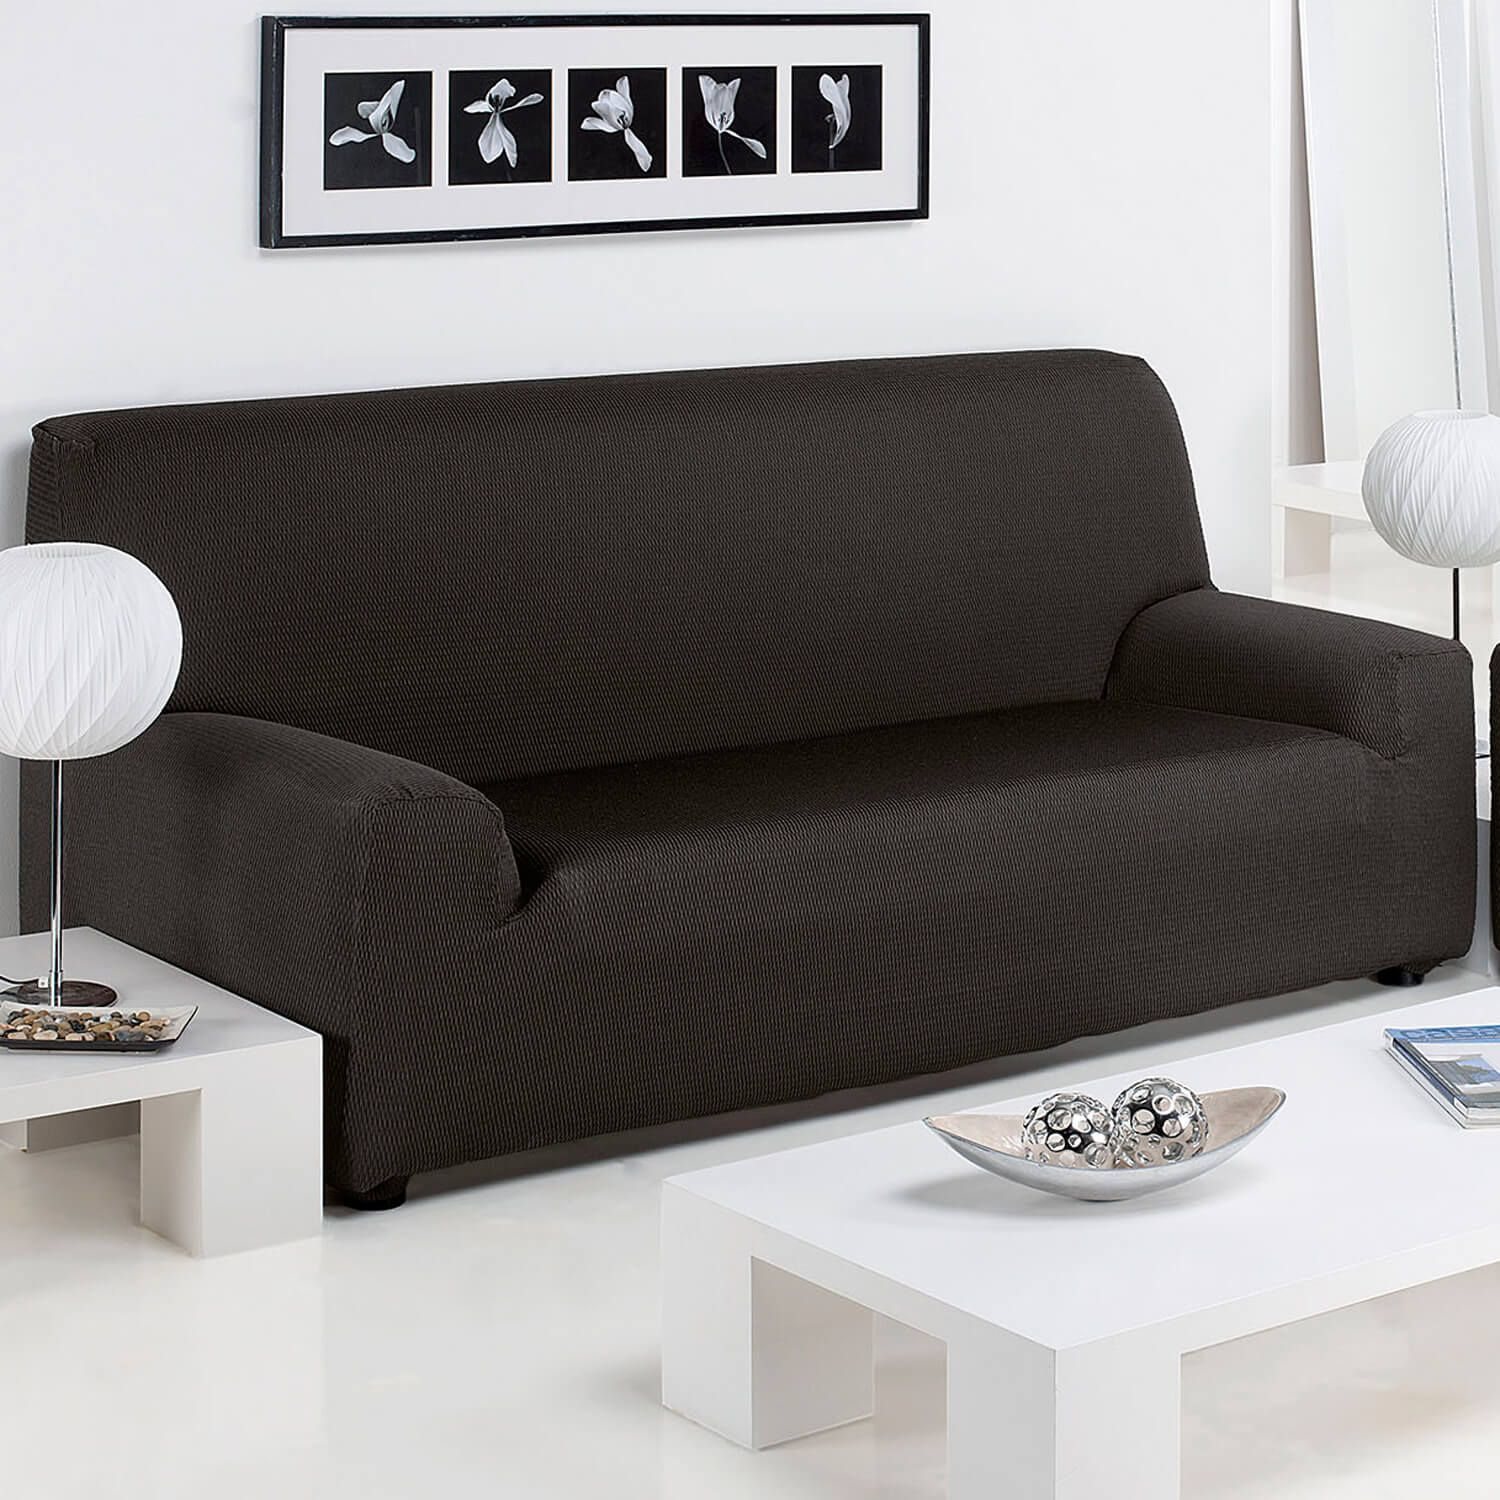 3 Seater Sofa Covers Ireland in 2020 Sofa covers, 3